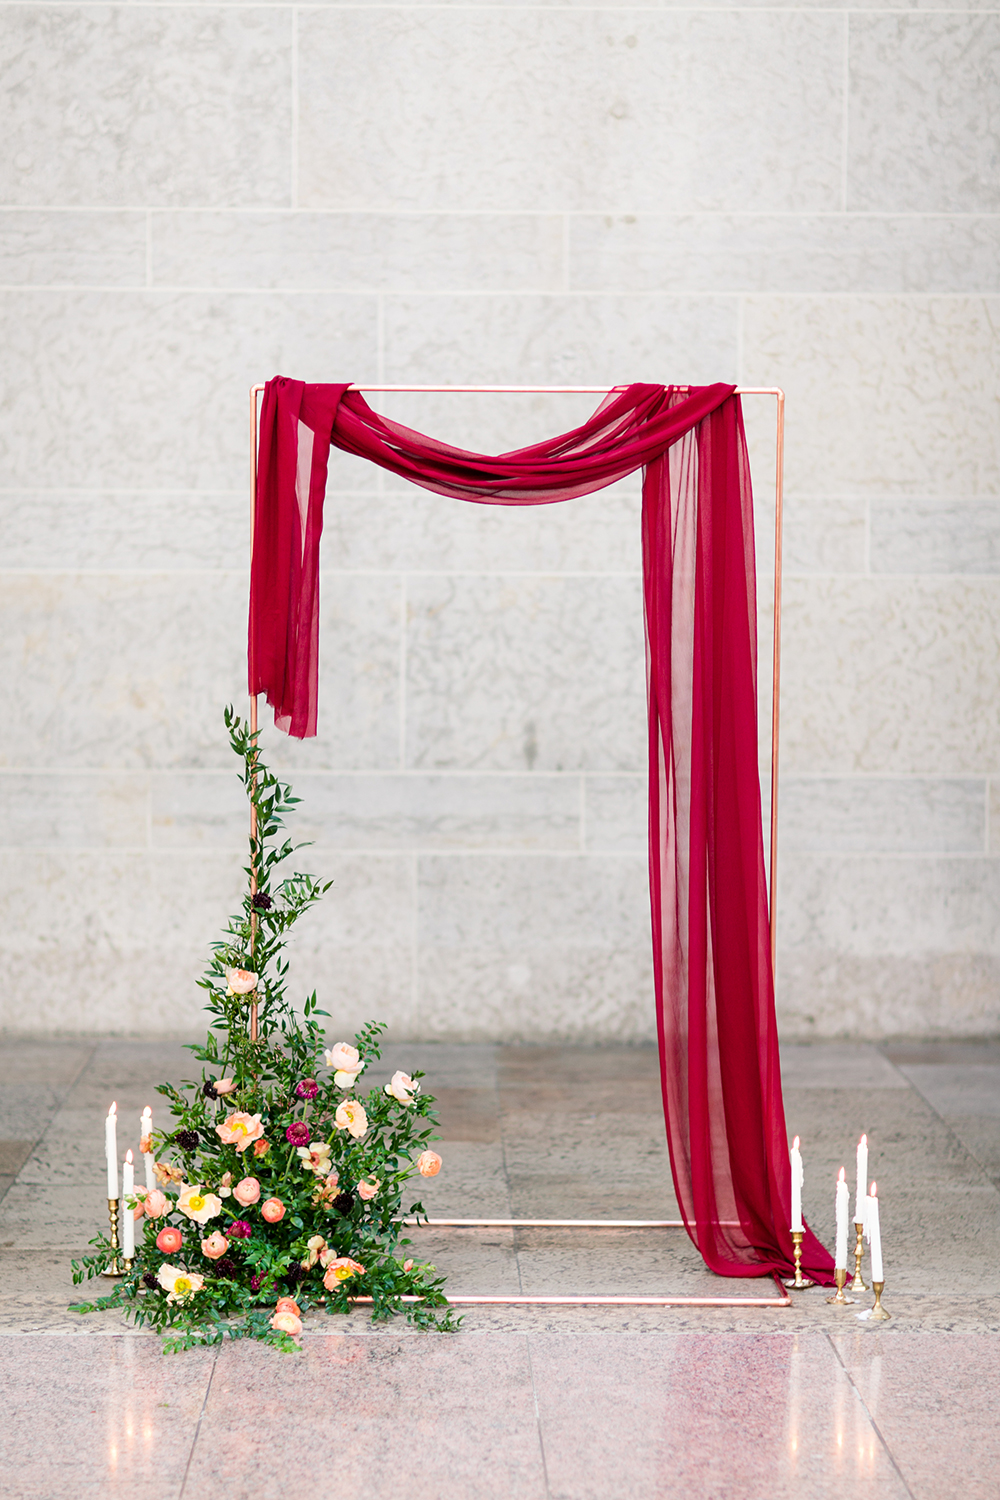 ceremony setups - photo by Lauren Lee Photography http://ruffledblog.com/modern-grecian-inspired-wedding-ideas